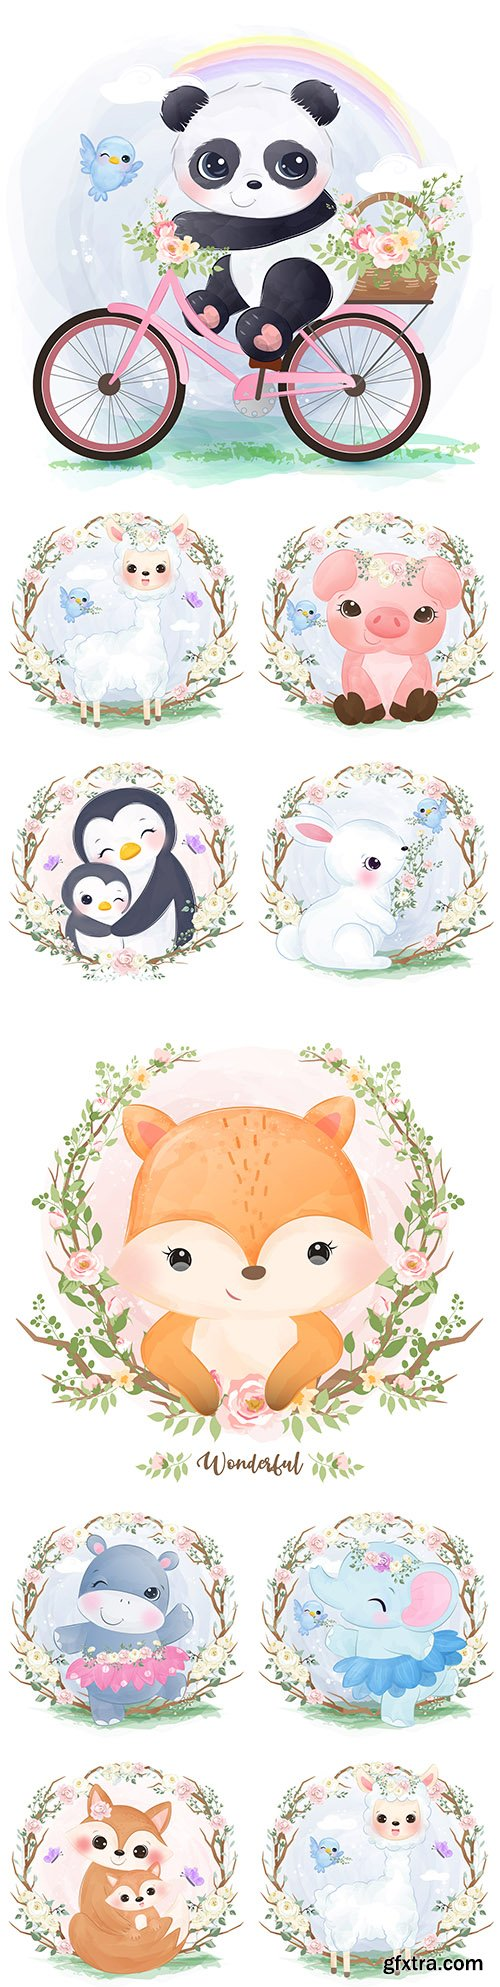 Cute animal mother and baby in flower frame watercolor illustration